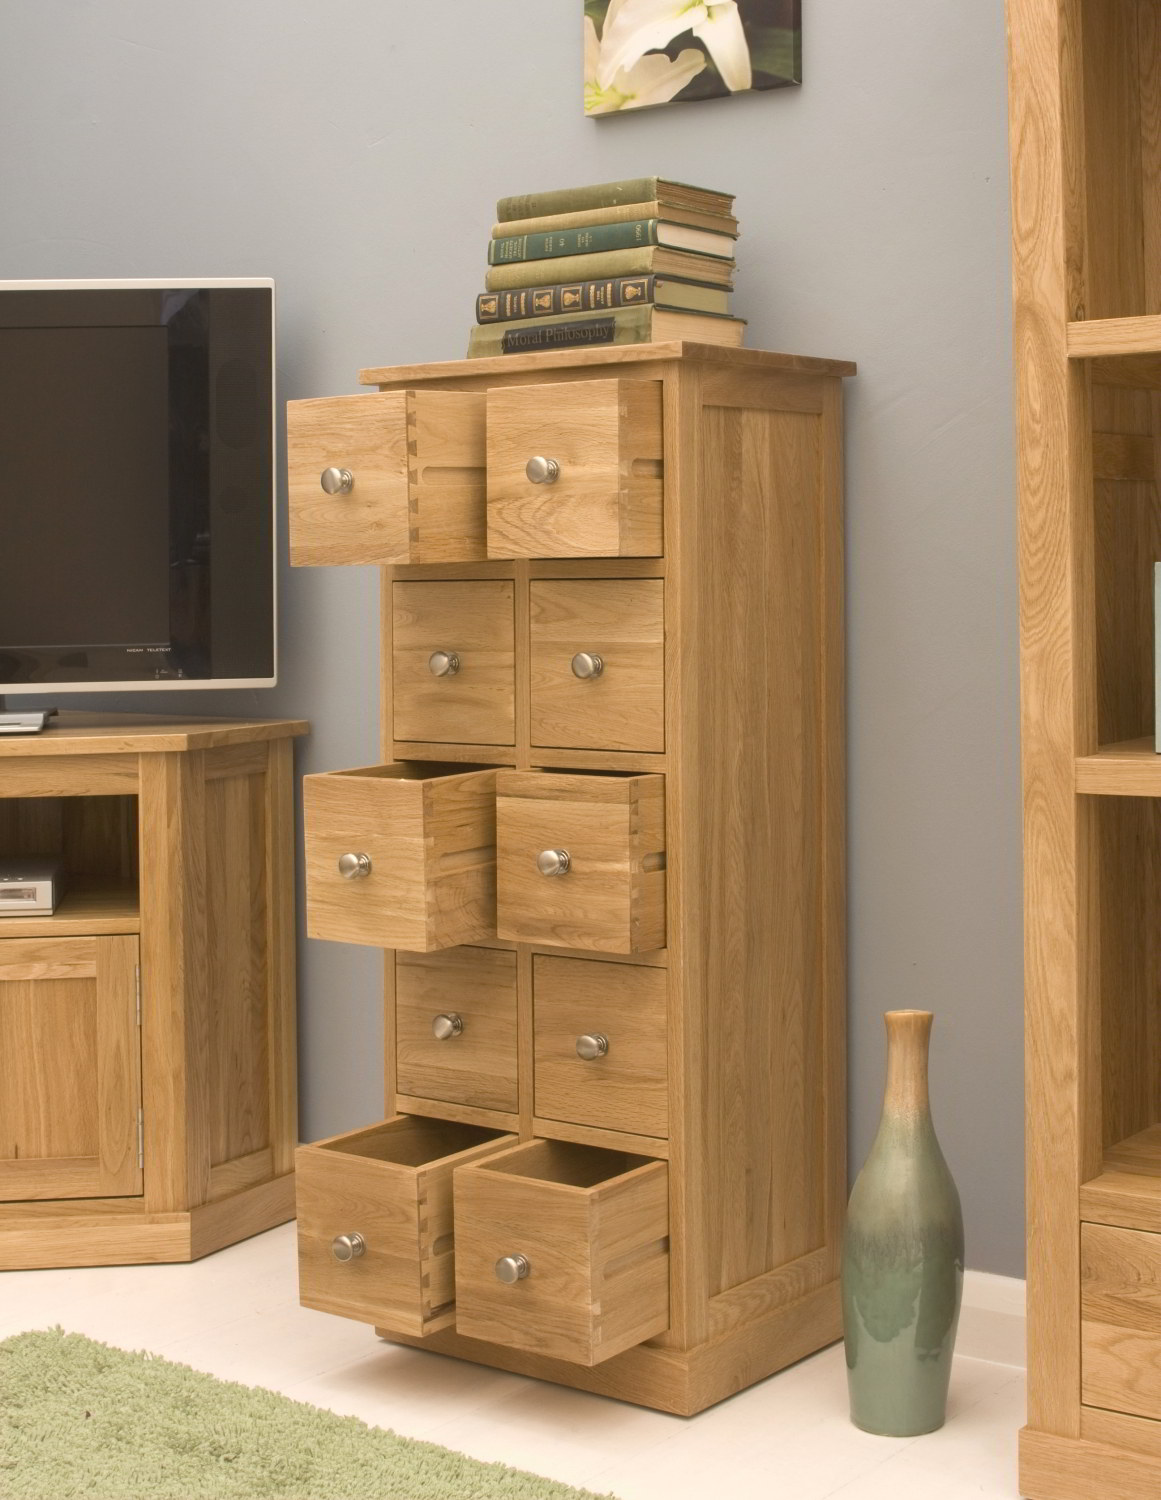 Conran solid oak contemporary furniture cd dvd storage chest of drawers unit